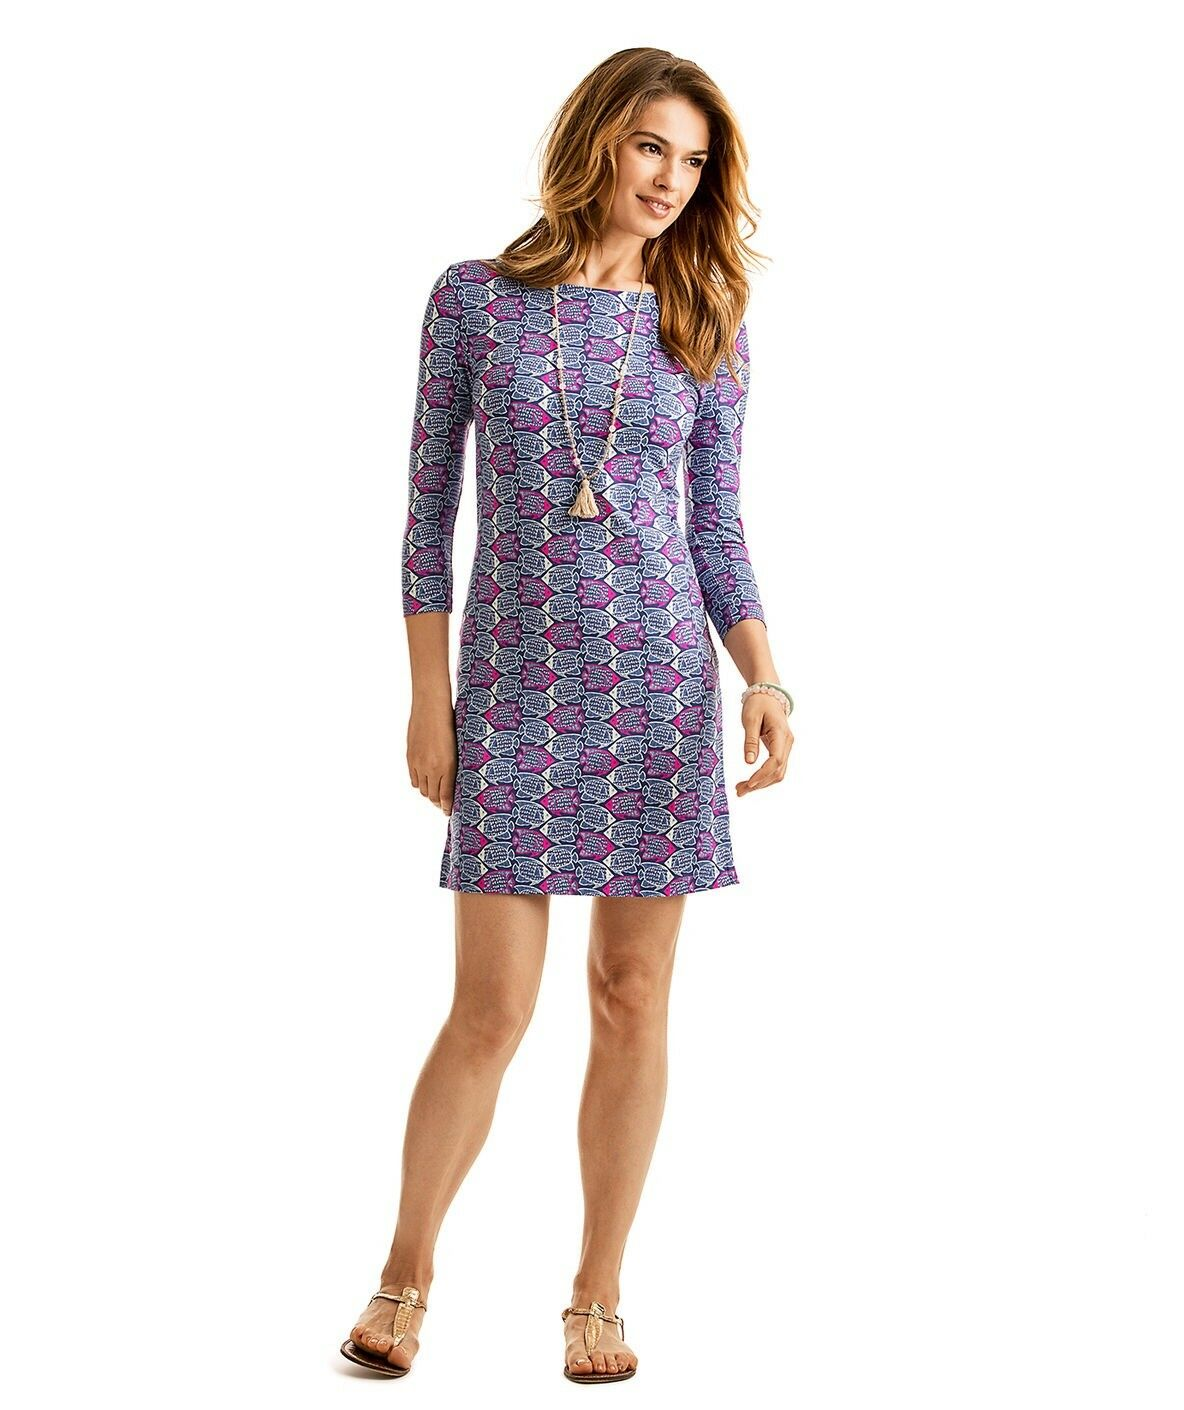 Vineyard vines ANGELFISH Stretchy Nylon Soandex 3 4 Sleeve Dress Sz. Xs